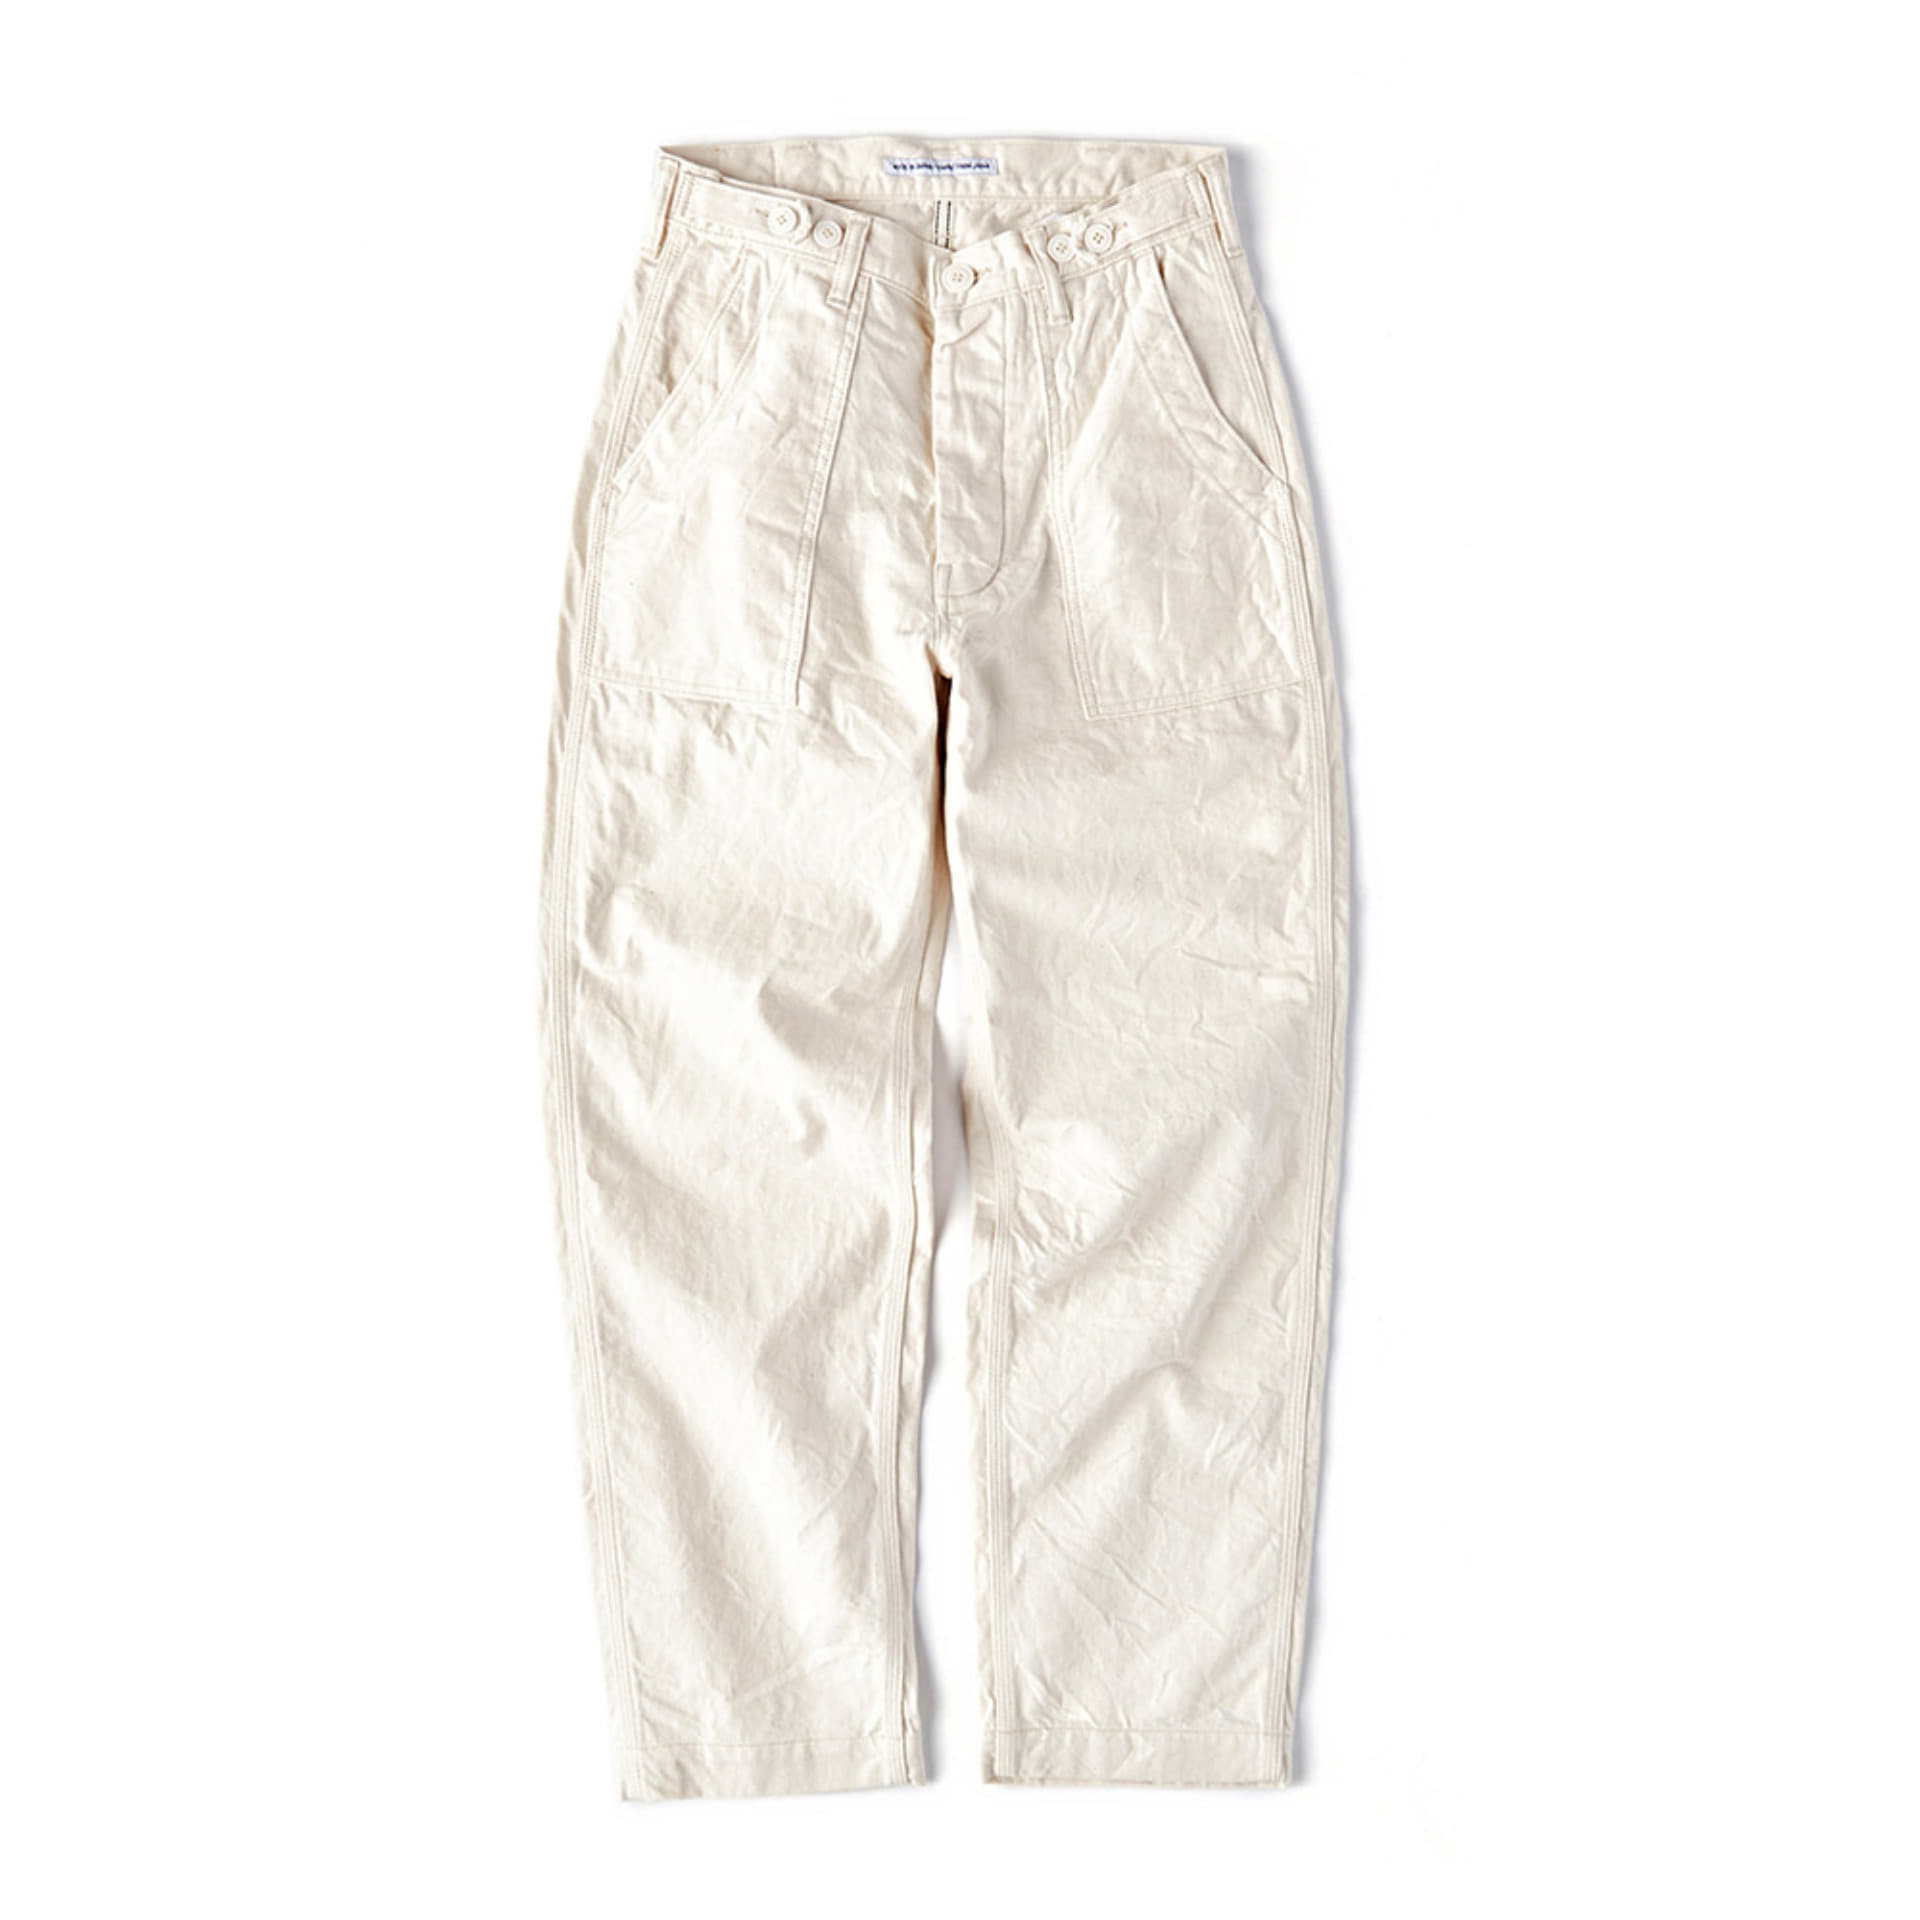 CWE-003 4 Pockets Ecru Fatigue Pants (Regular Straight - ECRU)